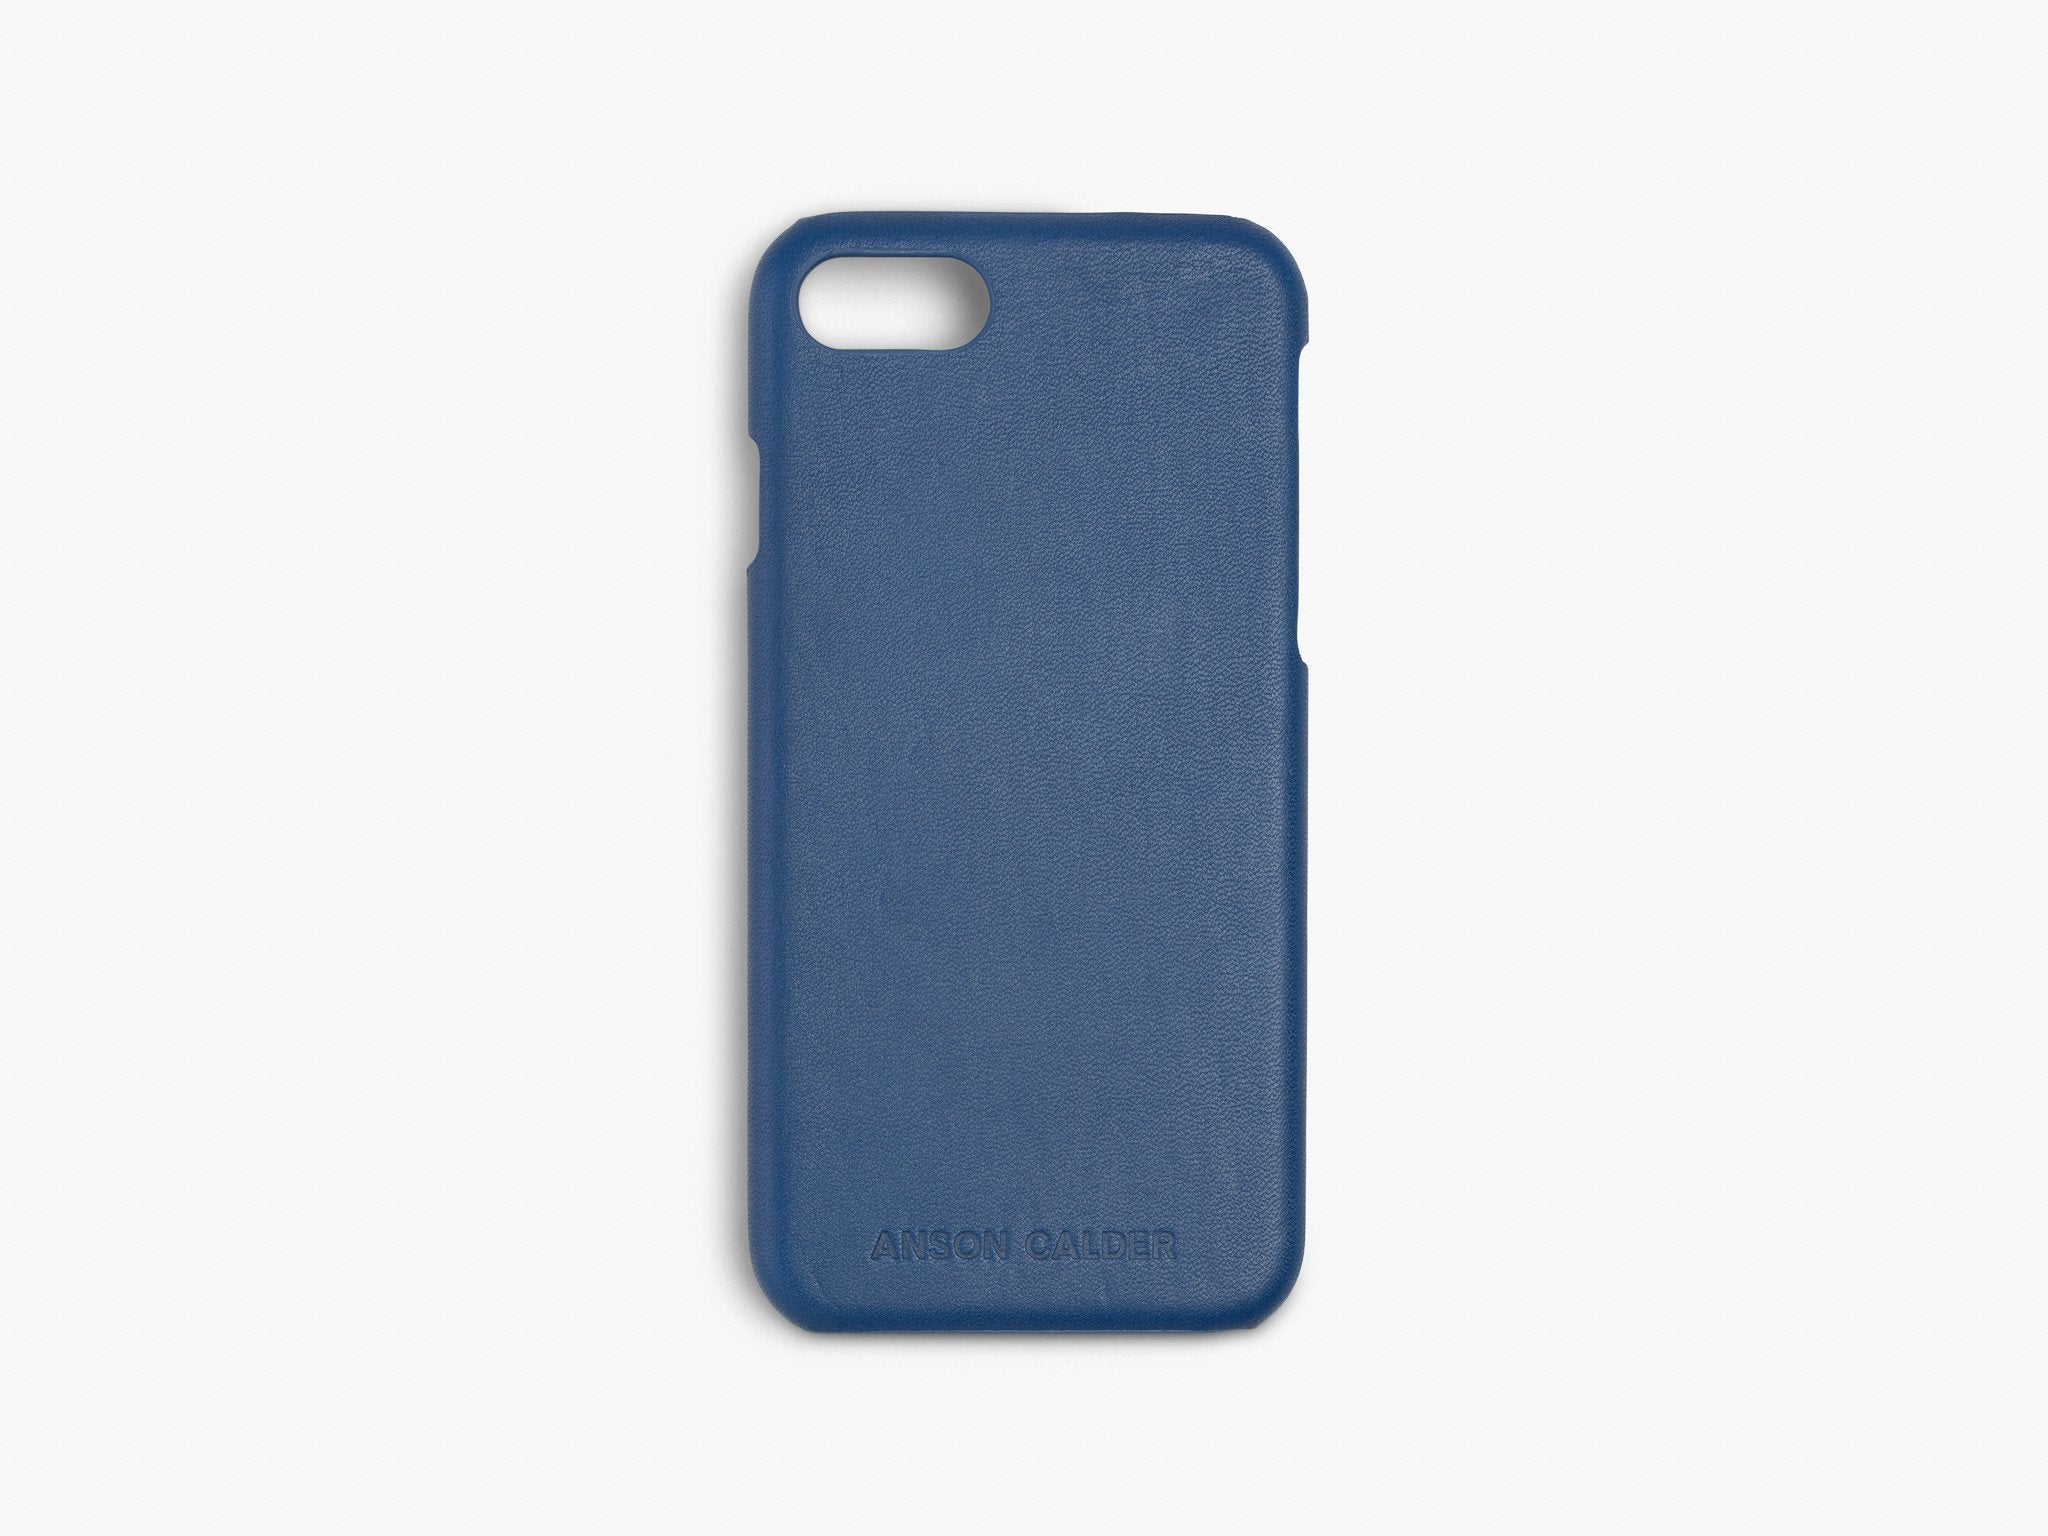 CALFSKIN iPHONE CASE CASES ANSON CALDER iPhone 6 / 6S !iphone8  _Cobalt